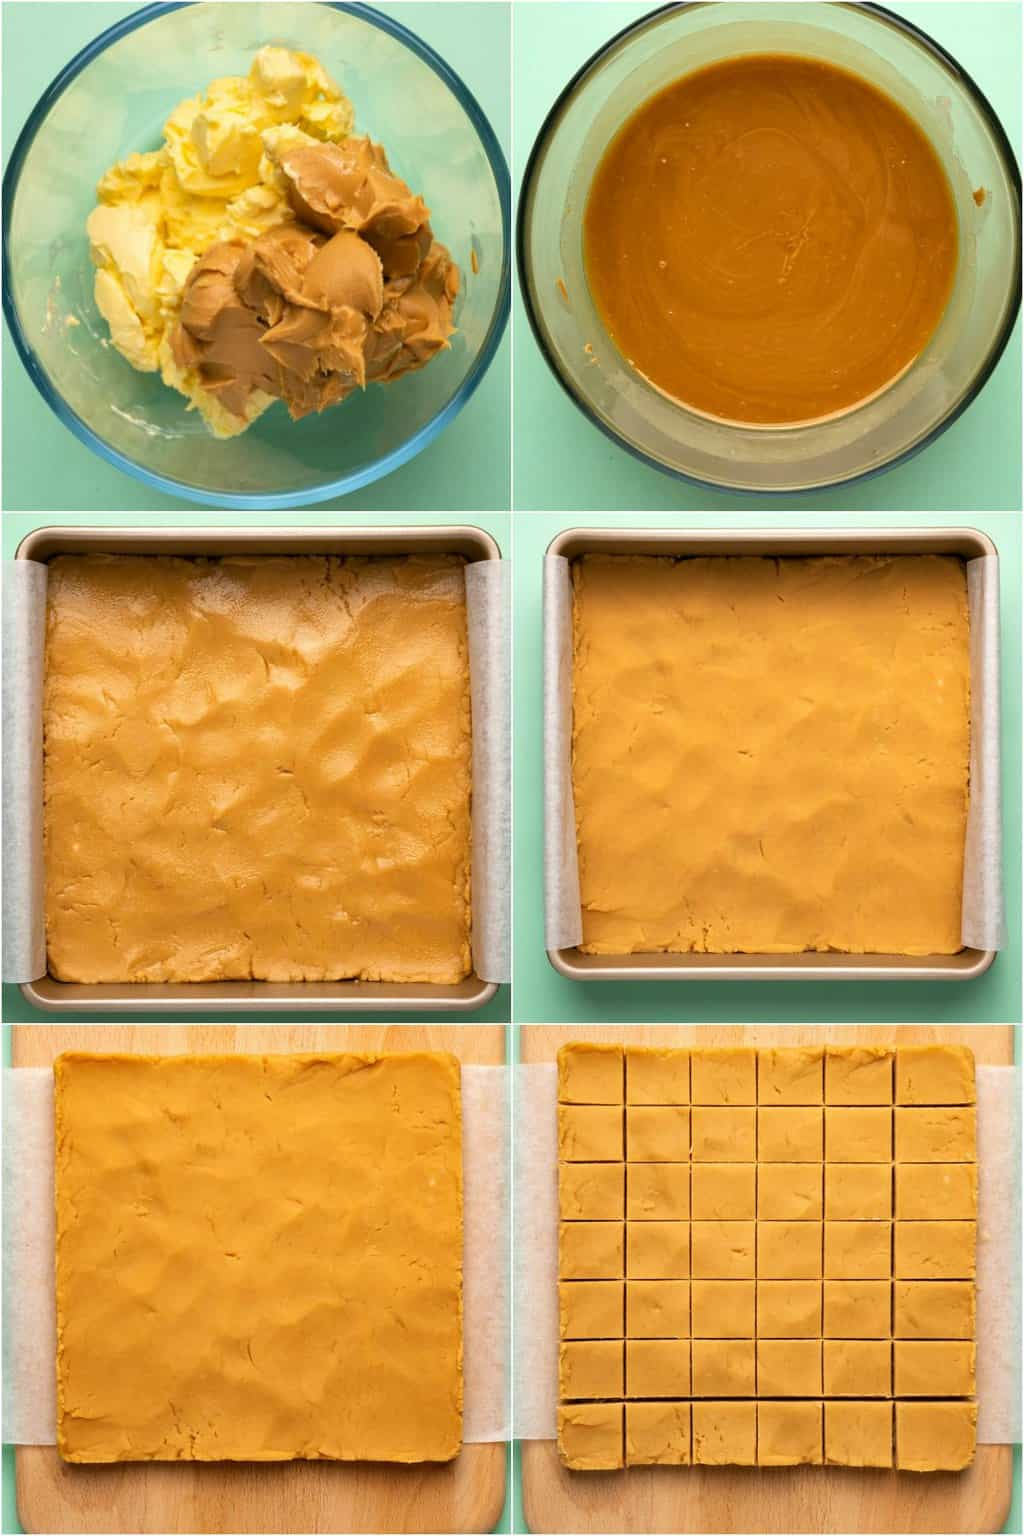 Step by step process photo collage of making vegan peanut butter fudge.